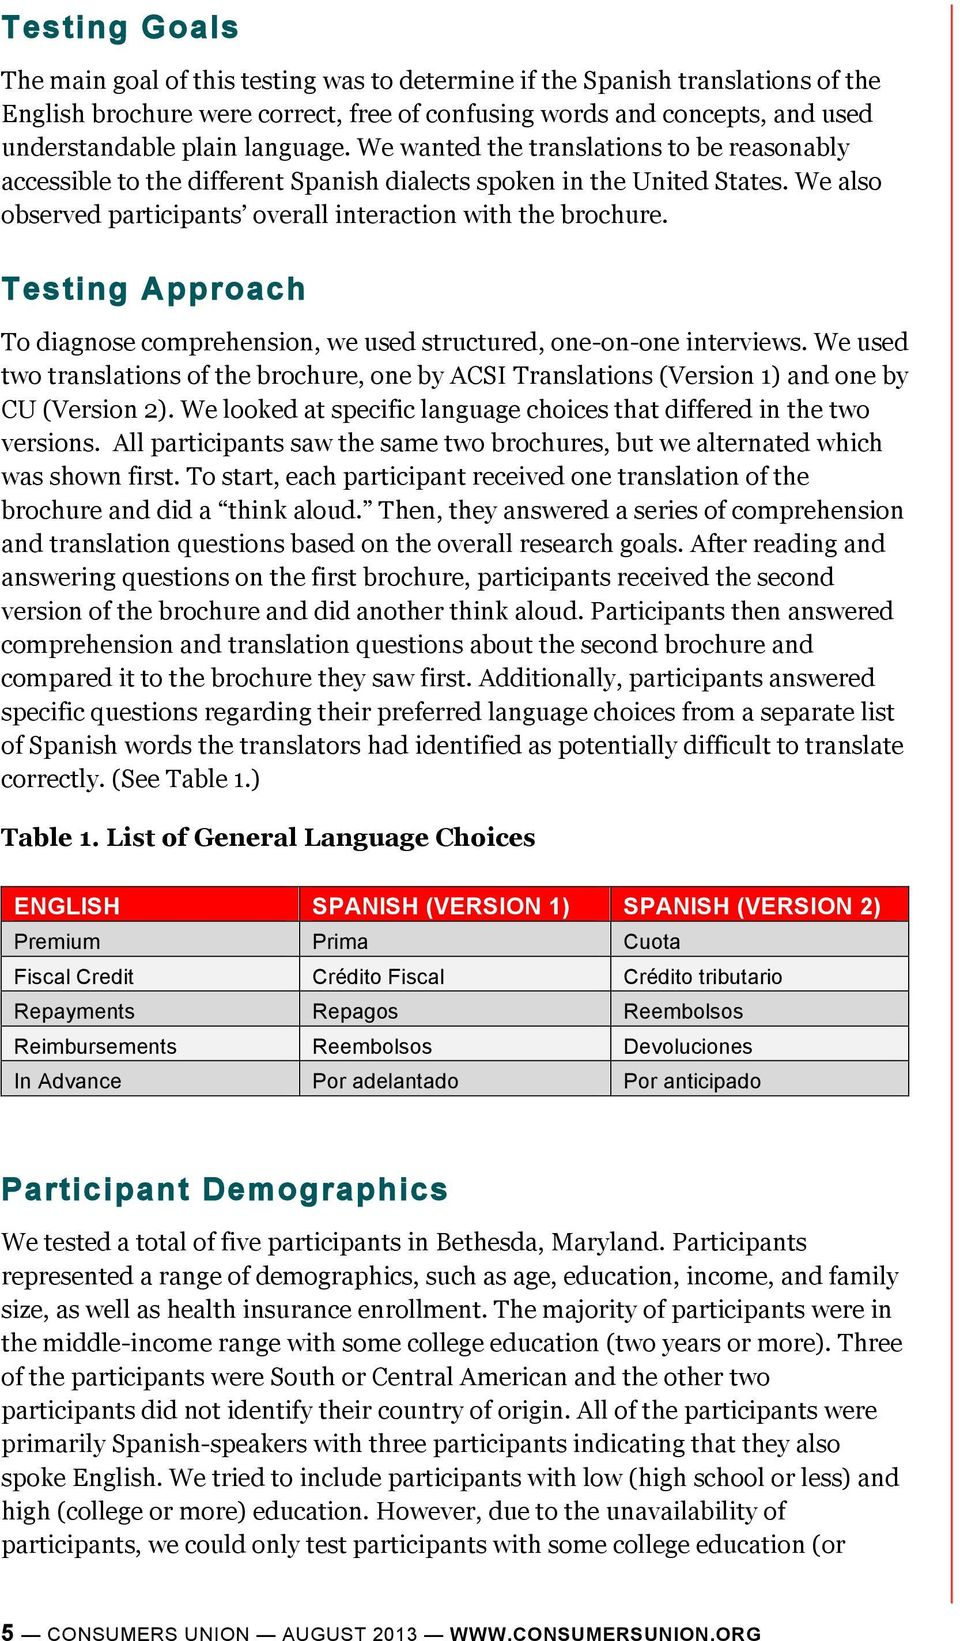 Testing Approach To diagnose comprehension, we used structured, one-on-one interviews. We used two translations of the brochure, one by ACSI Translations (Version 1) and one by CU (Version 2).